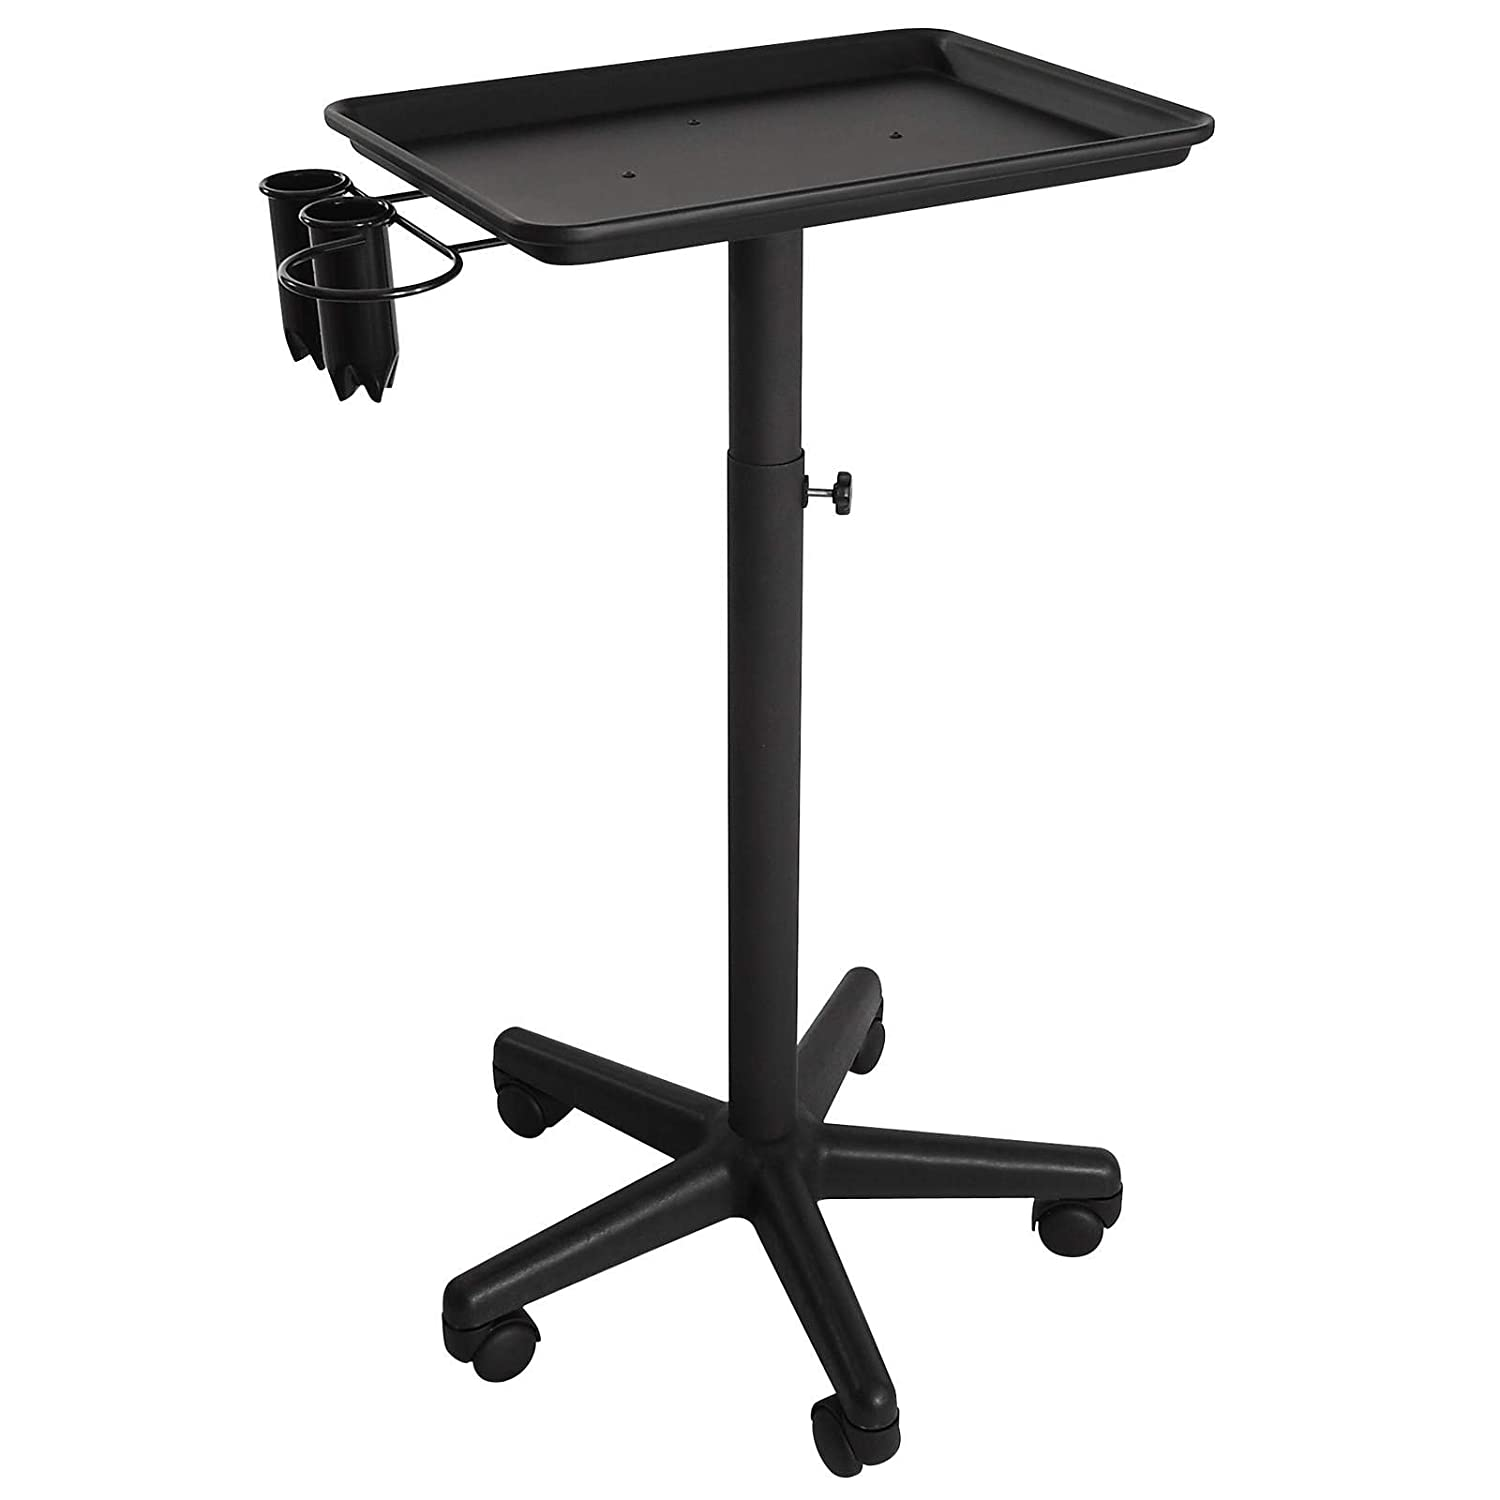 Saloniture Premium Aluminum Instrument Tray with Accessory Caddy - Black